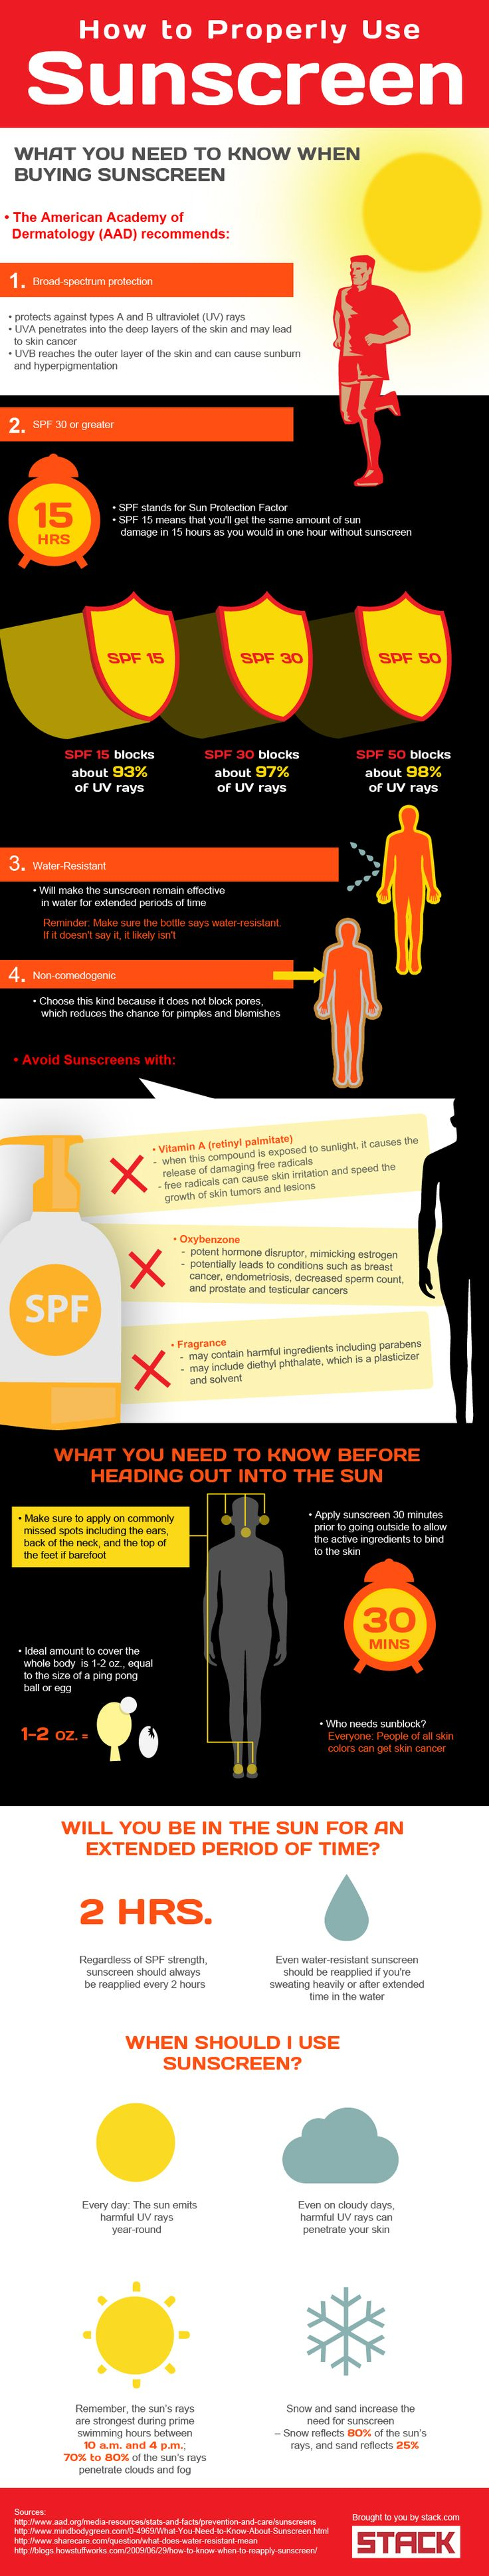 How to Properly Use Sunscreen